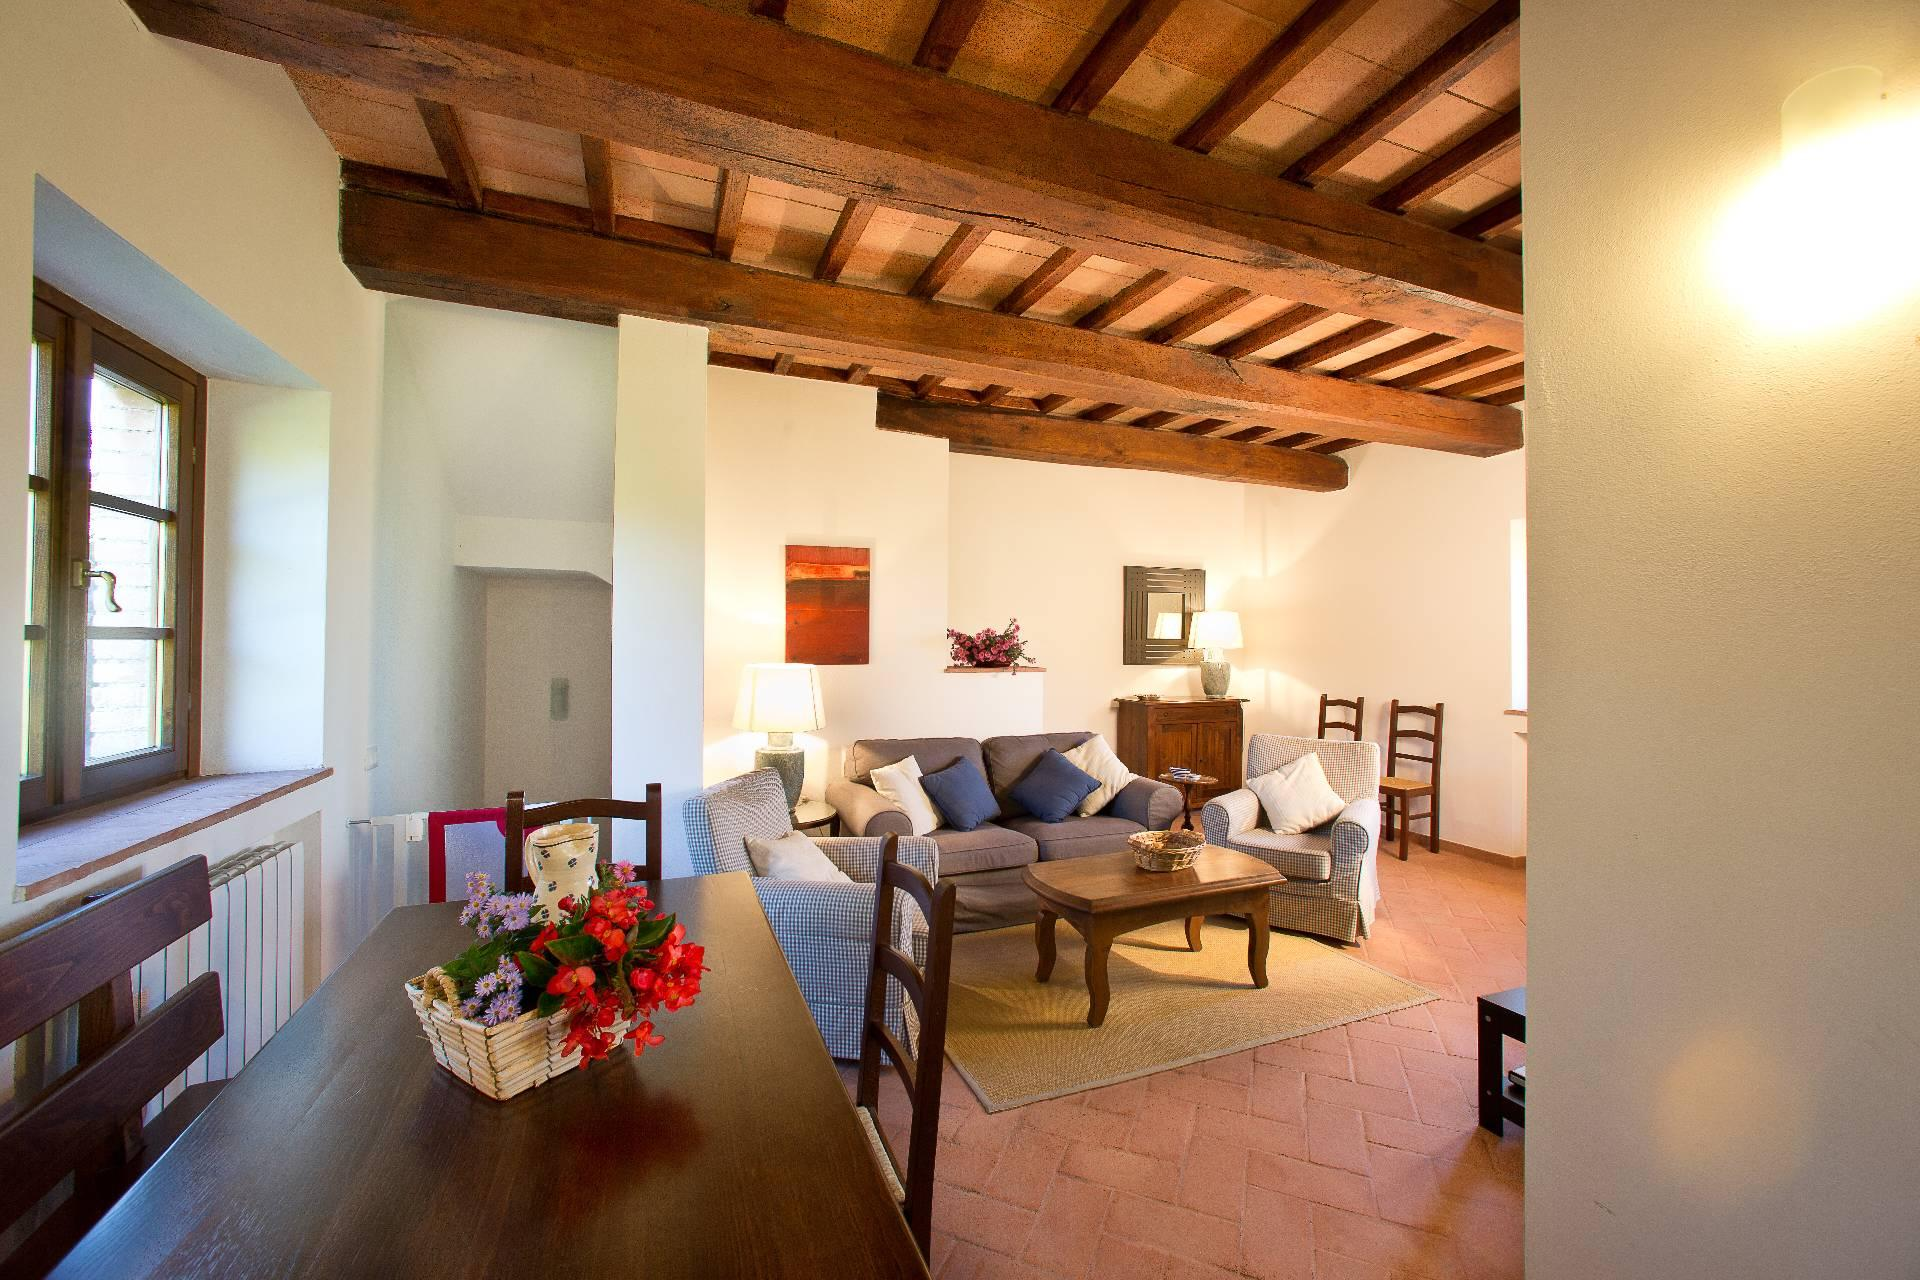 Luxury apartment in Maremma - 3